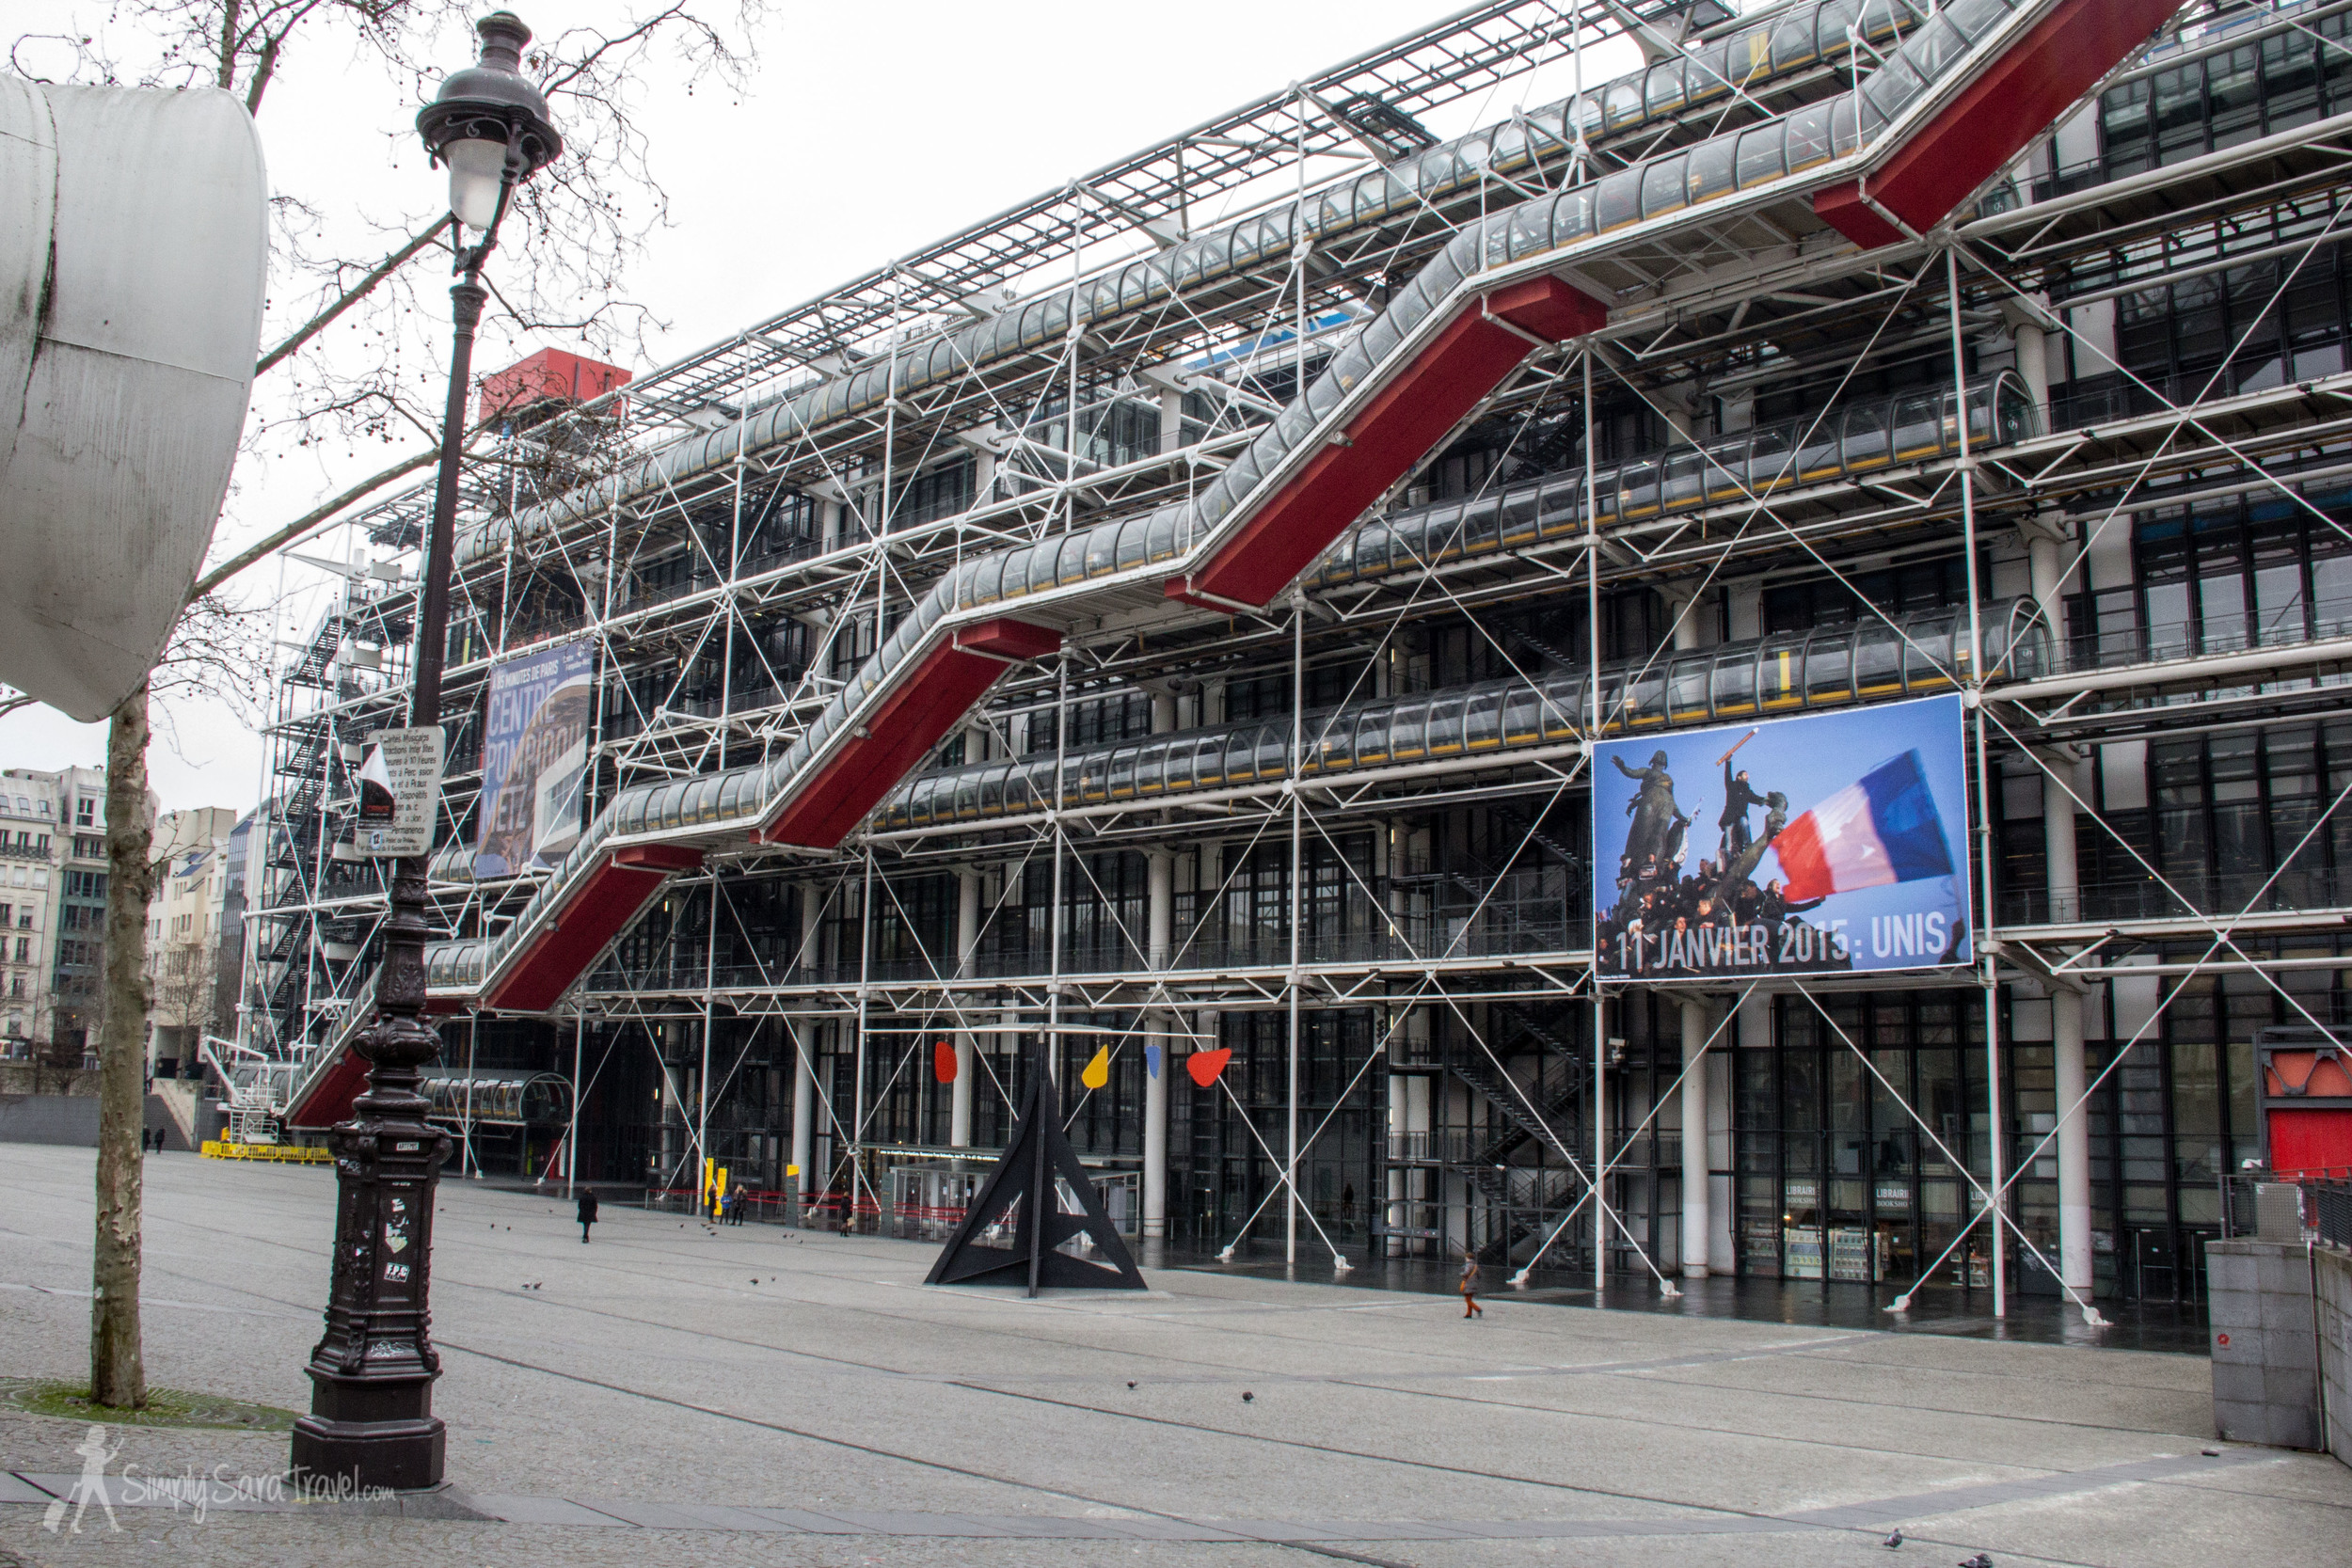 I've looked at the controversial looking Centre Pompidou countless times, admiring its quirky appearance. (It created quite a stir when it was built - if you have noticed, it sticks out a bit from the rest of the city's look.) I've passed by numerous times, but I never knew what the colors symbolized. We learned that the red tubes, which you can see here (it's where the escalators are) are red to reference their role as the blood of the building - the people are the life flow. You'll have to go on the tour to find out what the rest of the colors mean though!